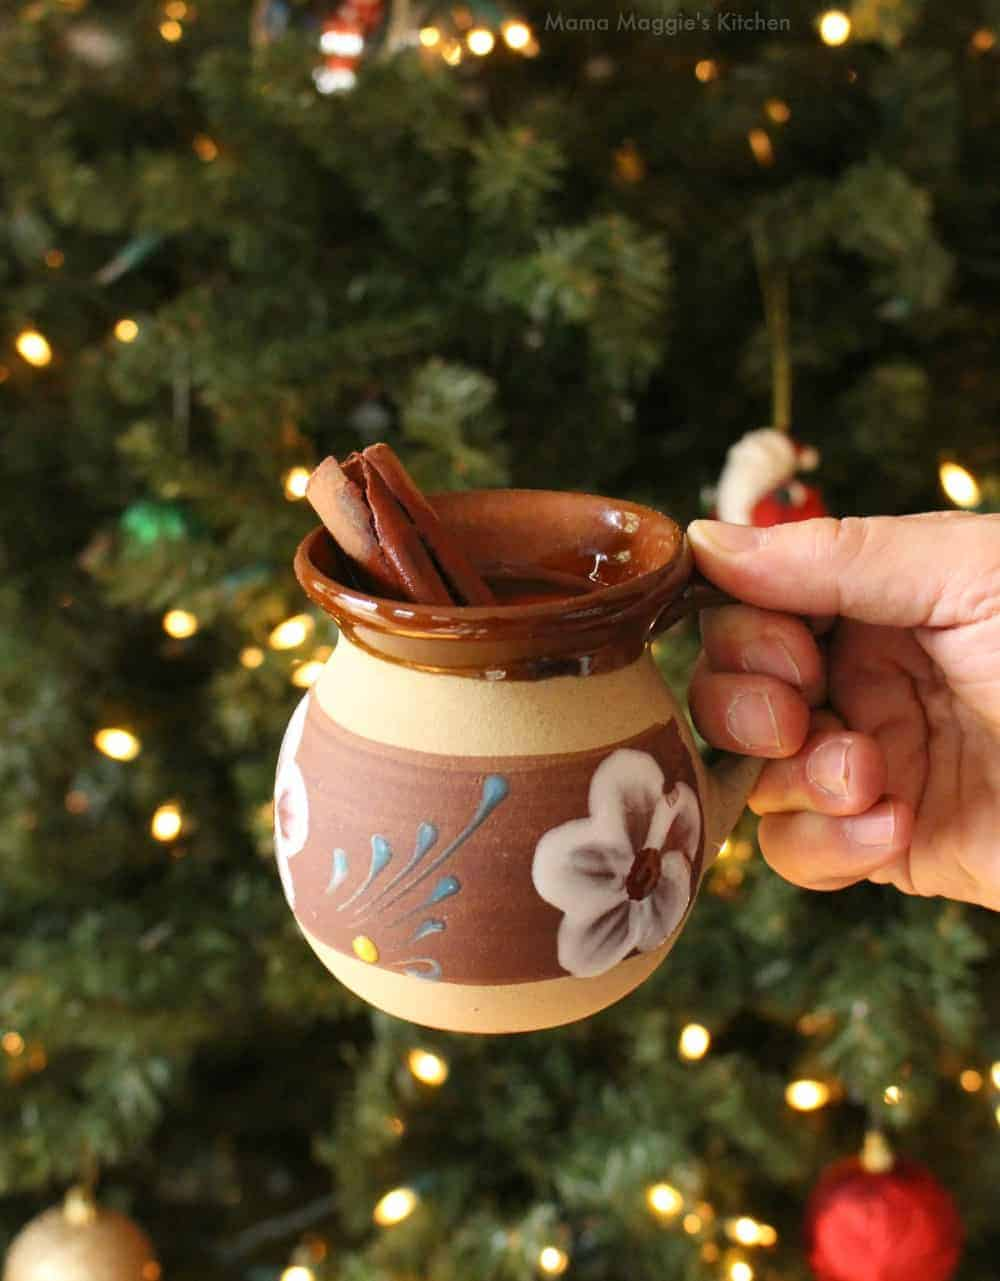 Hand holding a decorative clay mug with Ponche Navideno next to a Christmas tree.